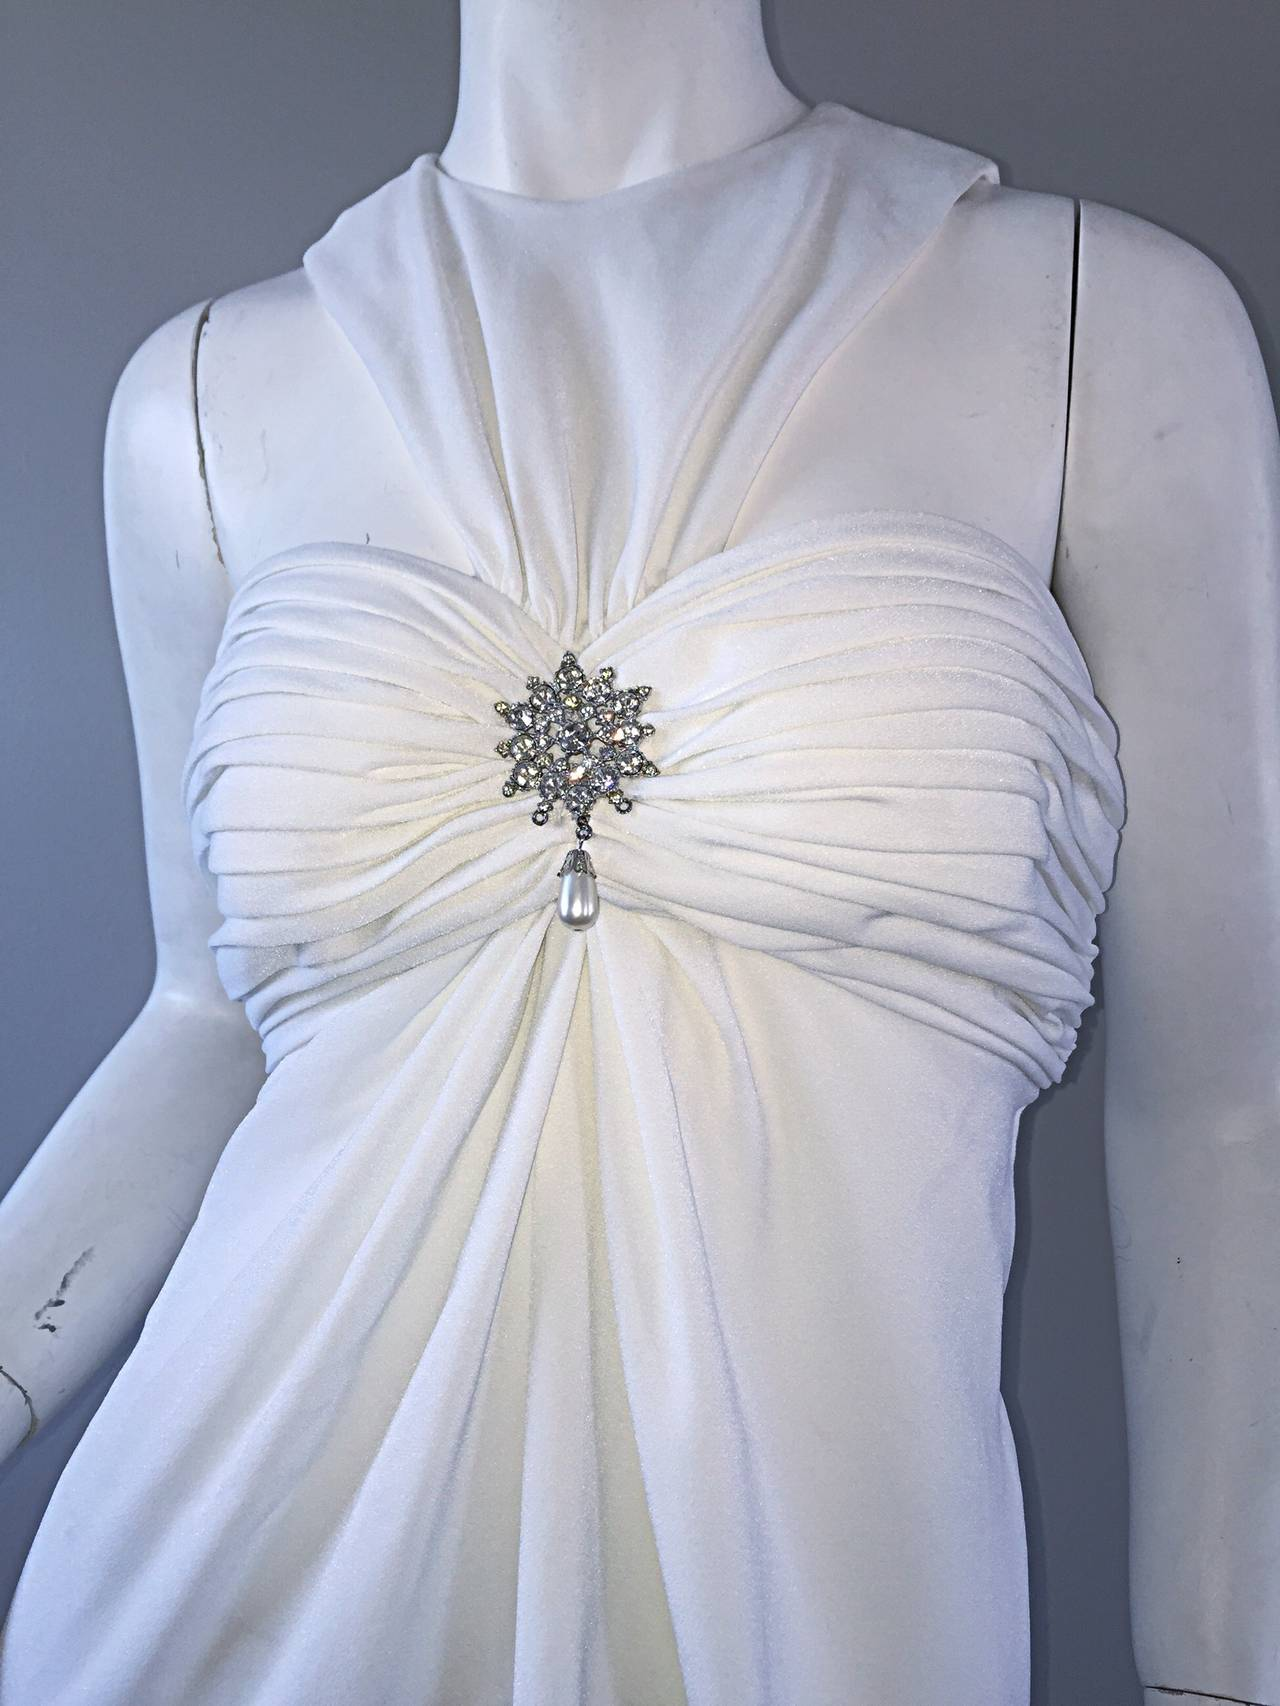 Gray 1990s Vintage Tadashi Shoji White 90s Grecian Dress w/ Rhinestones + Pearl For Sale